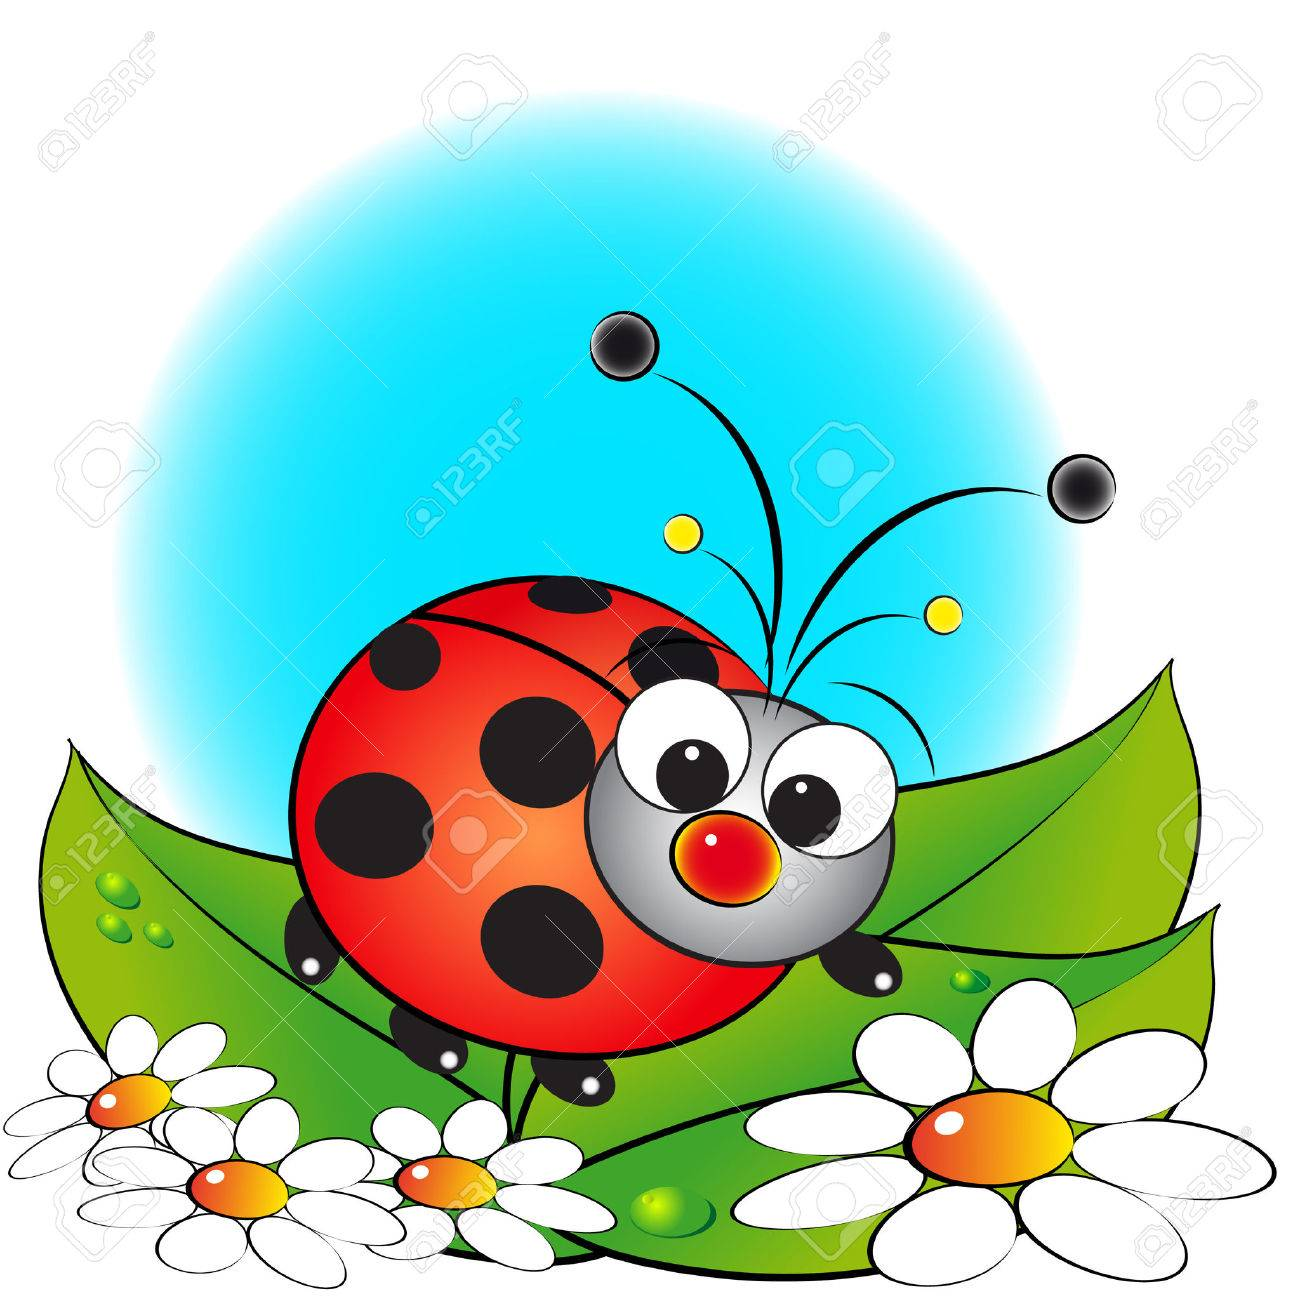 Ladybug and flowers - Card for kids - Scrapbook and labels useful - 4504215